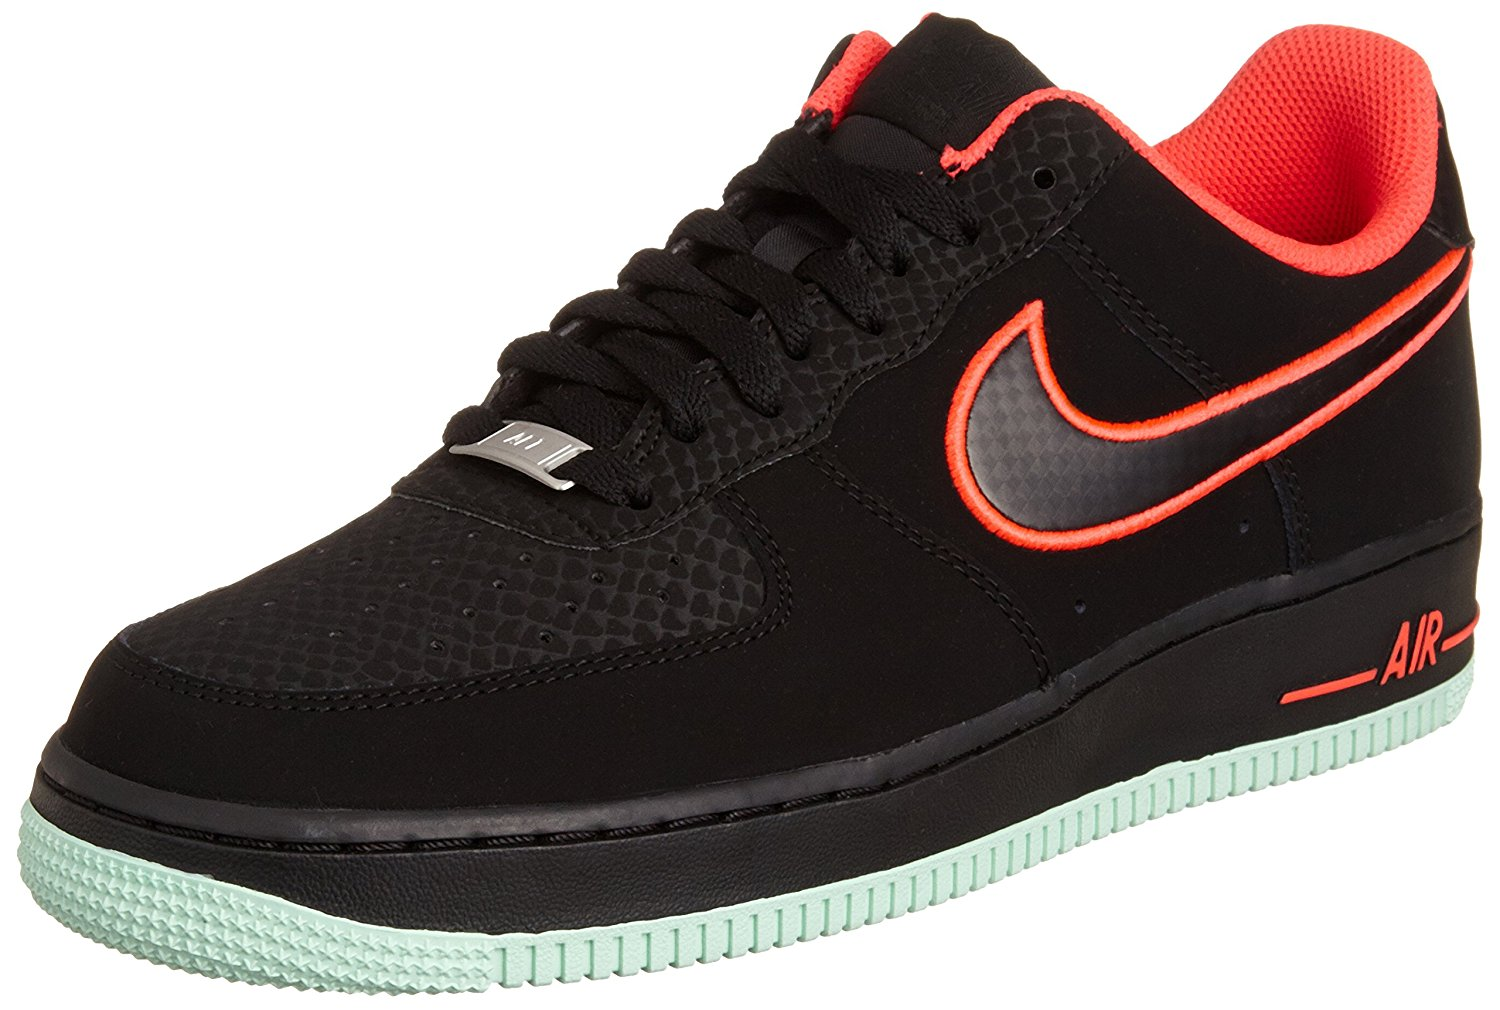 on sale 46ea0 e0791 Get Quotations · Nike MenS Air Force 1 Low Casual Shoes